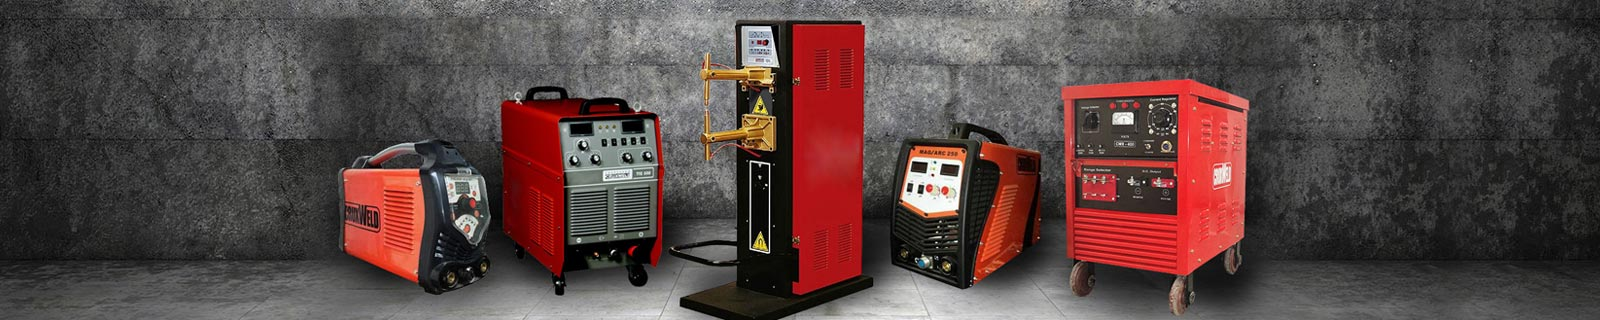 Welding machine training